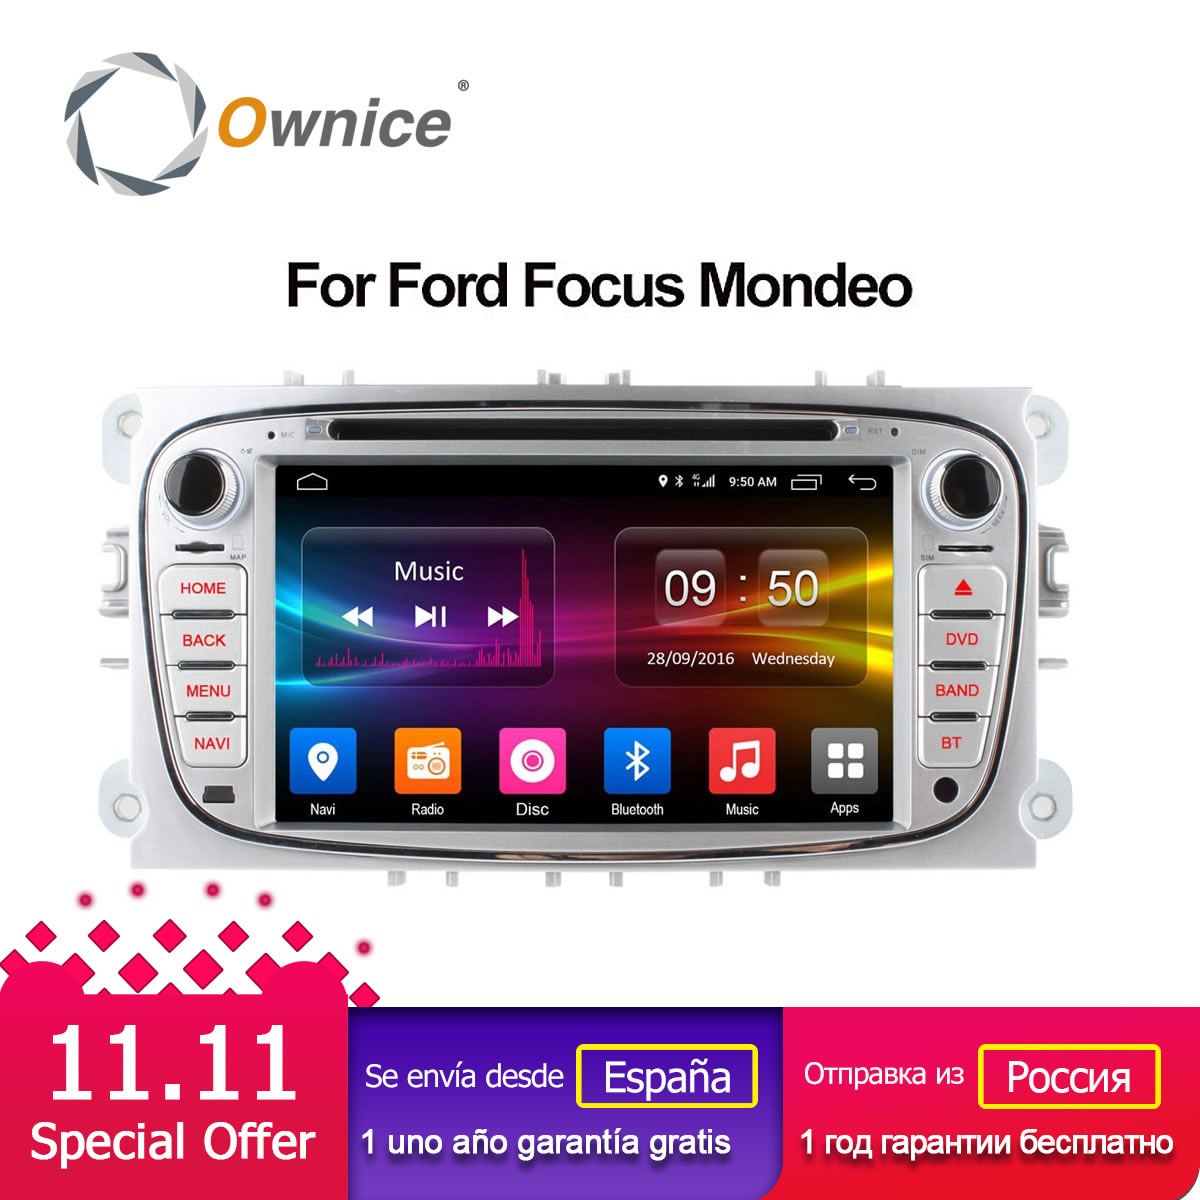 Ownice C500 Android 6.0 Octa Core 32G ROM Car DVD player GPS for Ford Mondeo S-Max Cmax Focus II GPS Radio Support 4G LTE ownice c500 4g sim lte octa 8 core android 6 0 for kia ceed 2013 2015 car dvd player gps navi radio wifi 4g bt 2gb ram 32g rom